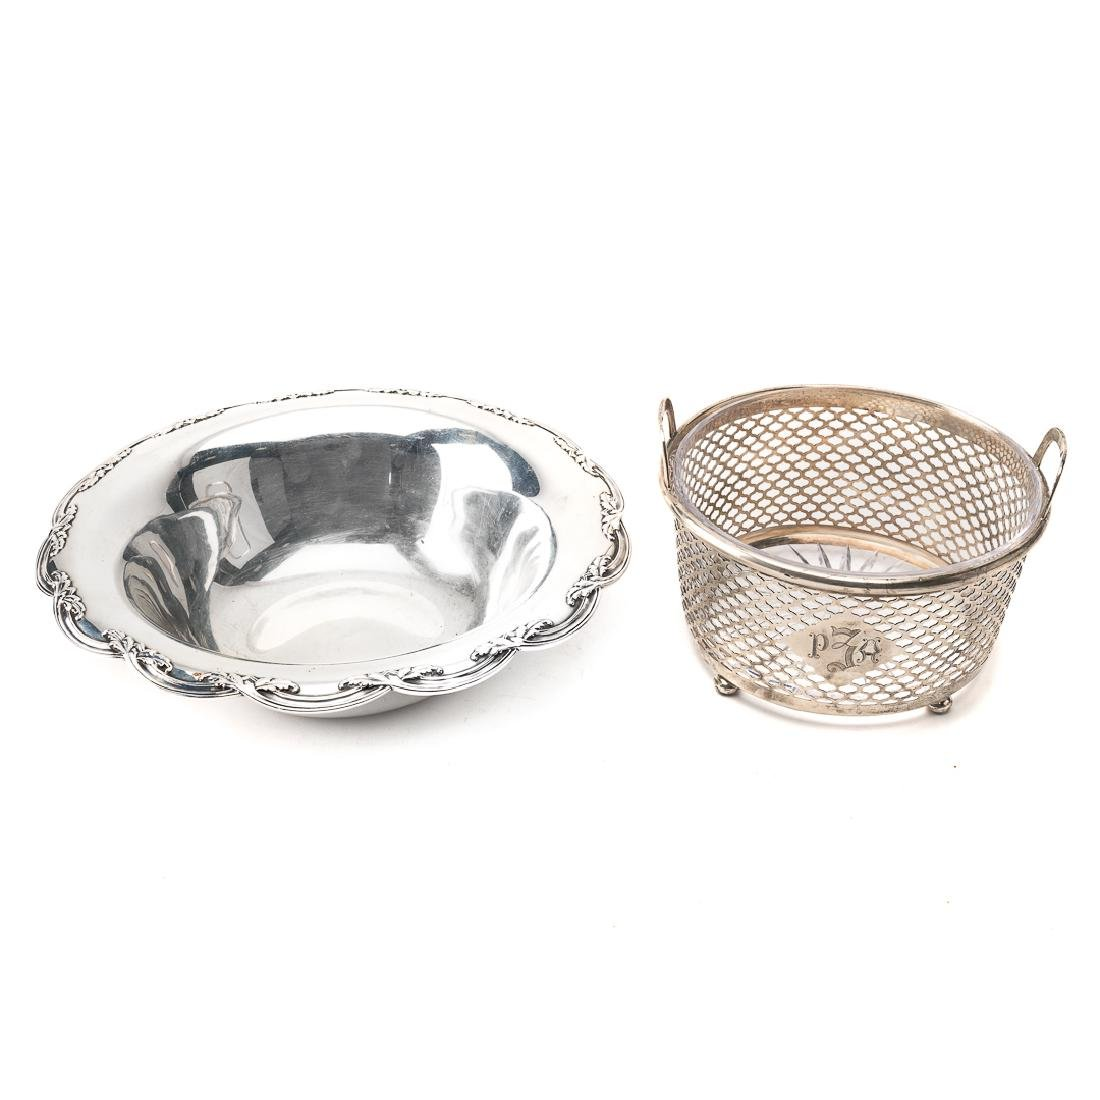 Tiffany & Co. sterling center bowl & ice bucket